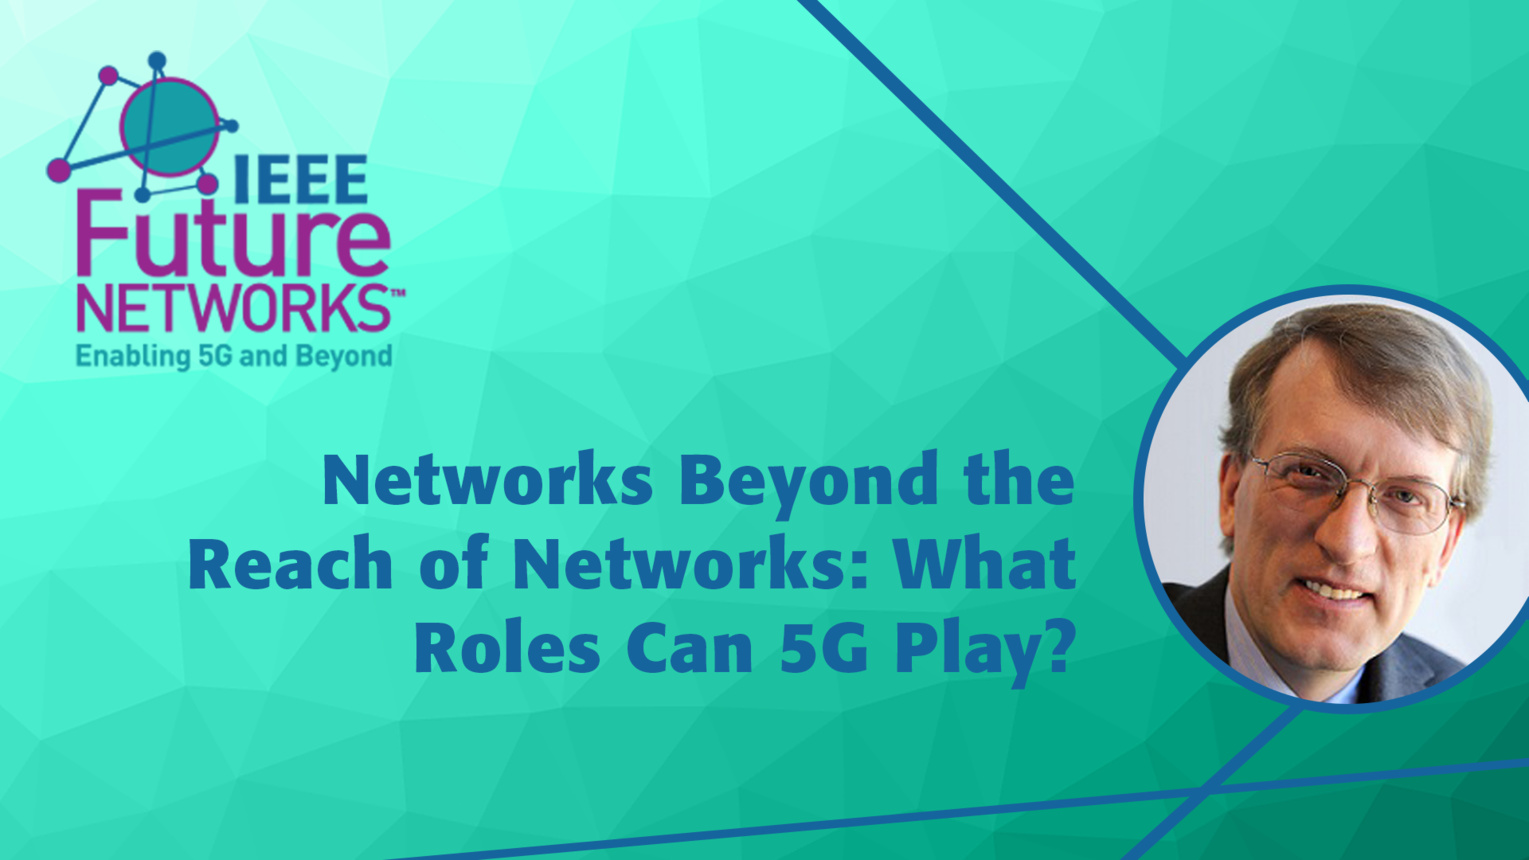 Networks Beyond the Reach of Networks: What Roles Can 5G Play? - Henning Schulzrinne - 5G Technologies for Tactical and First Responder Networks 2018